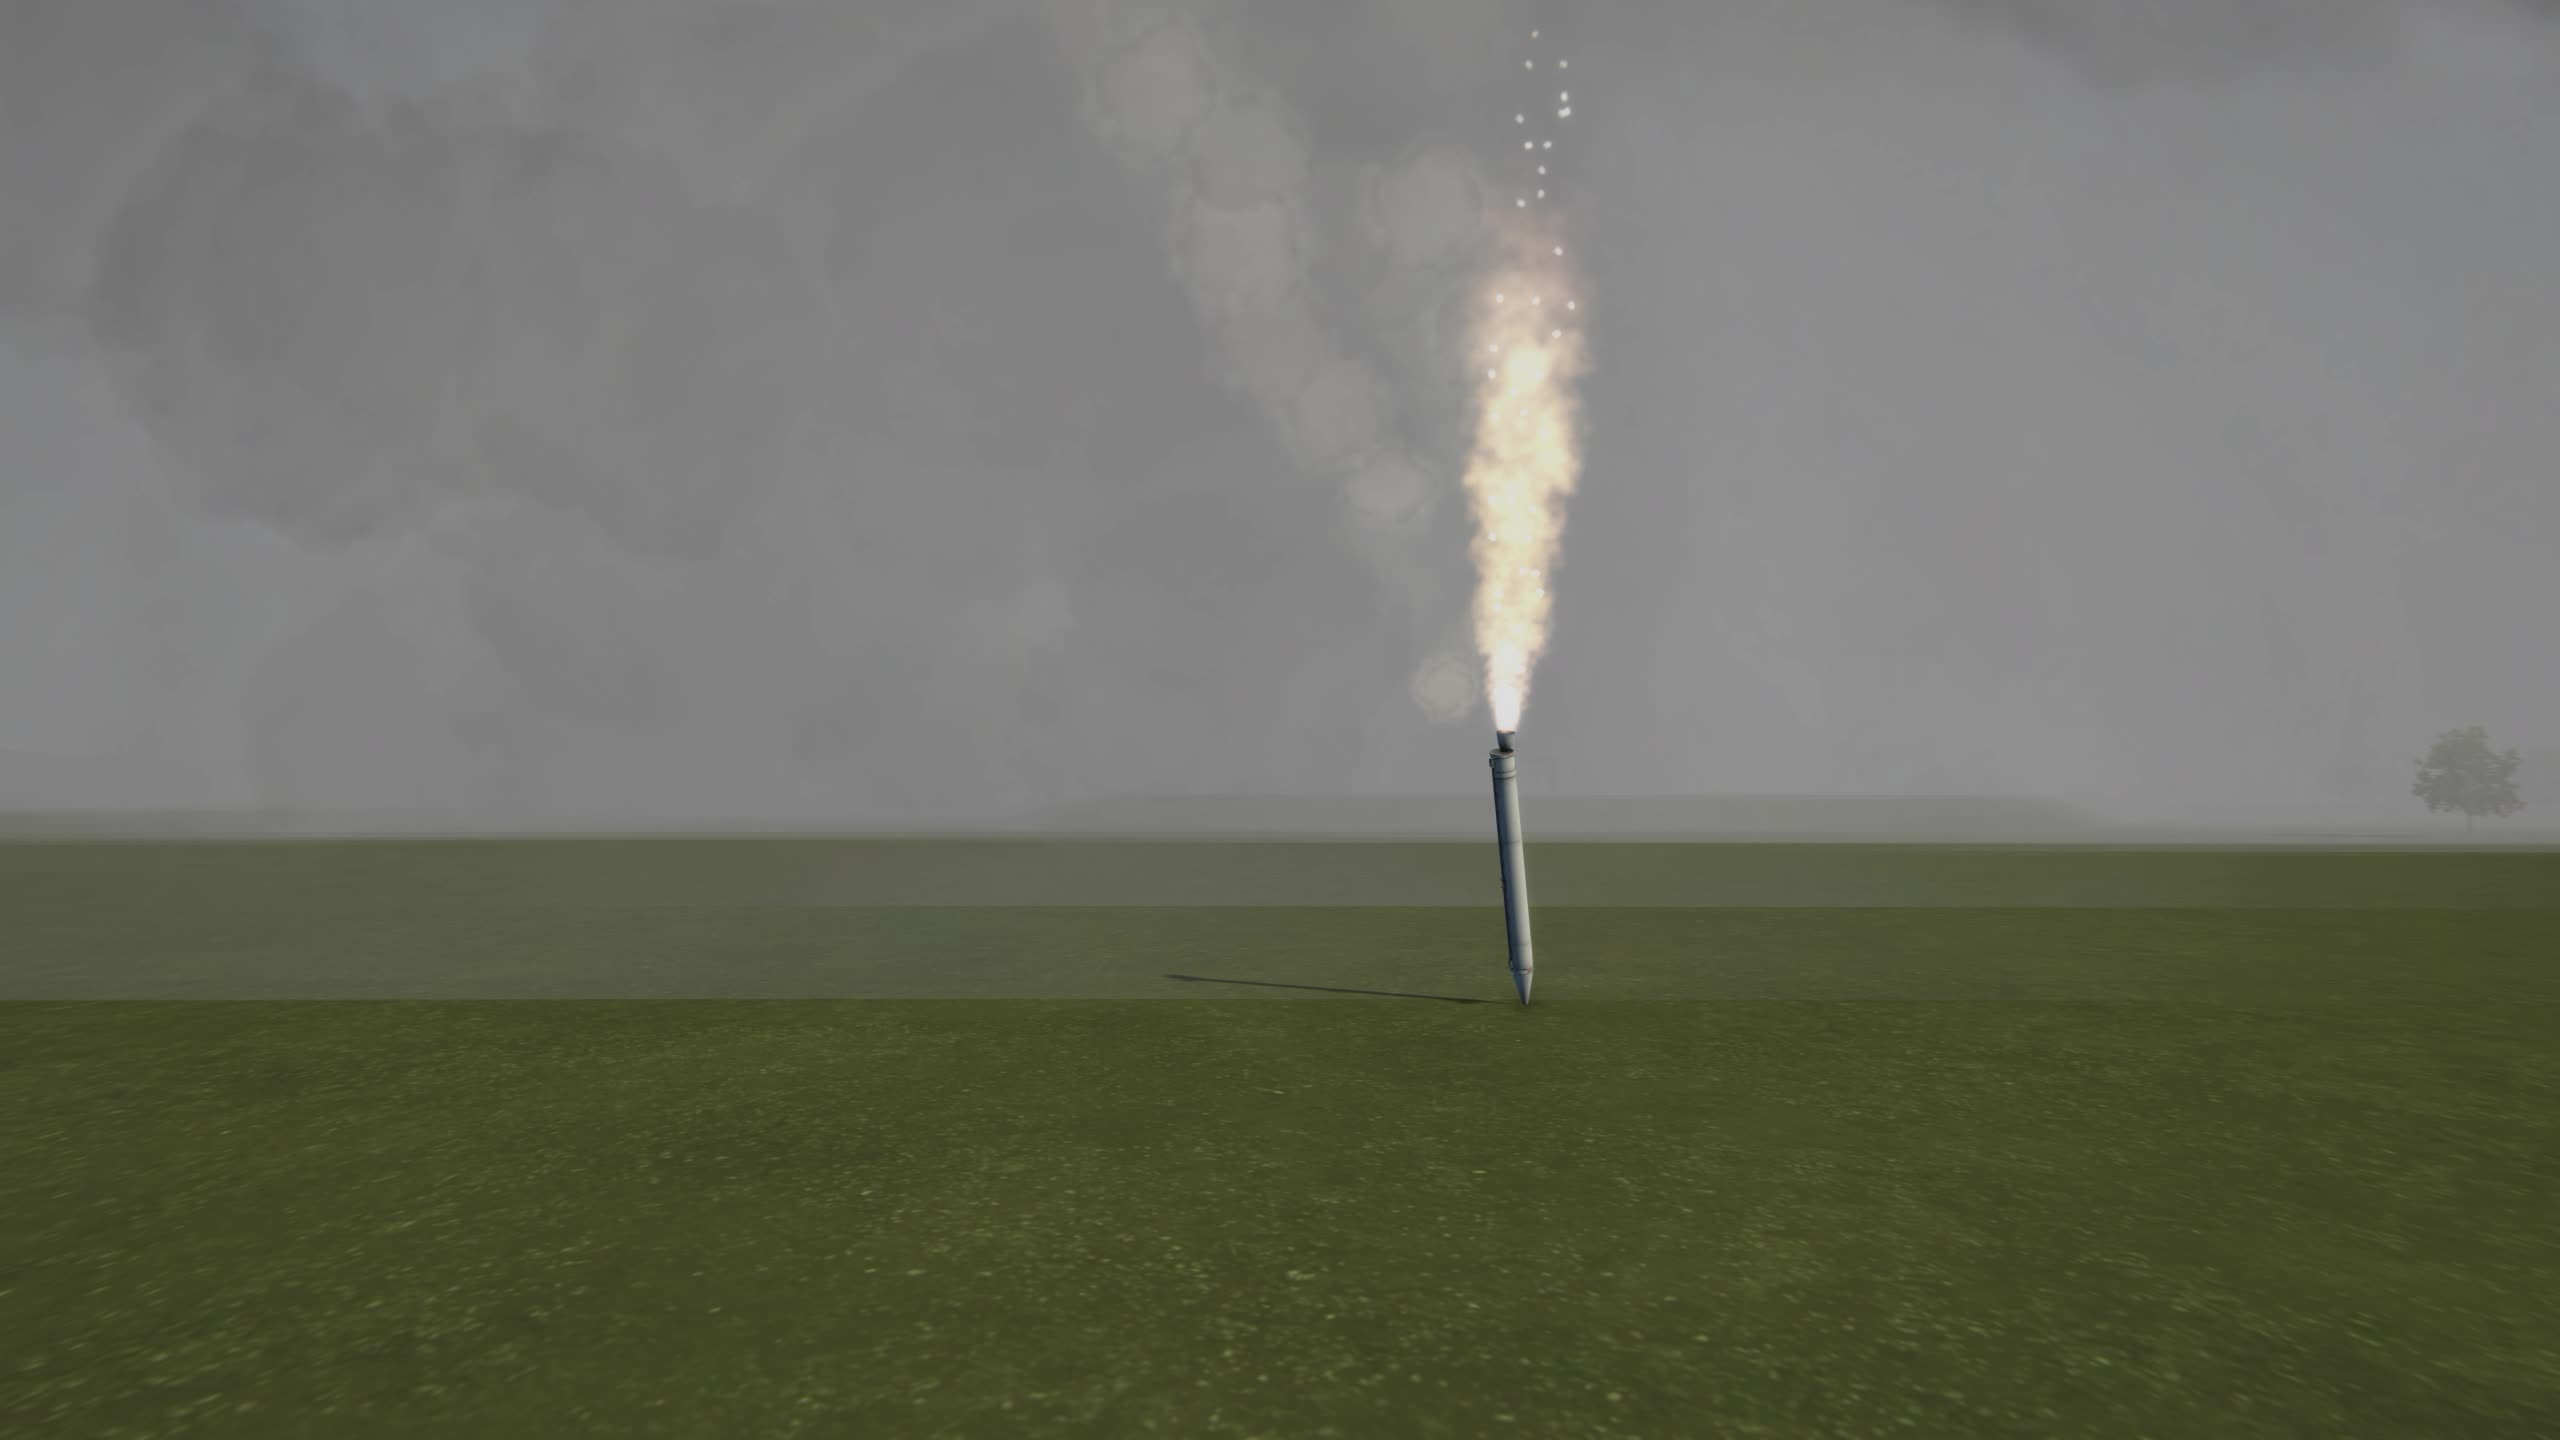 kerbalspaceprogram, Kerbal Space Program 2019.03.23 - 23.16.59.01 GIFs